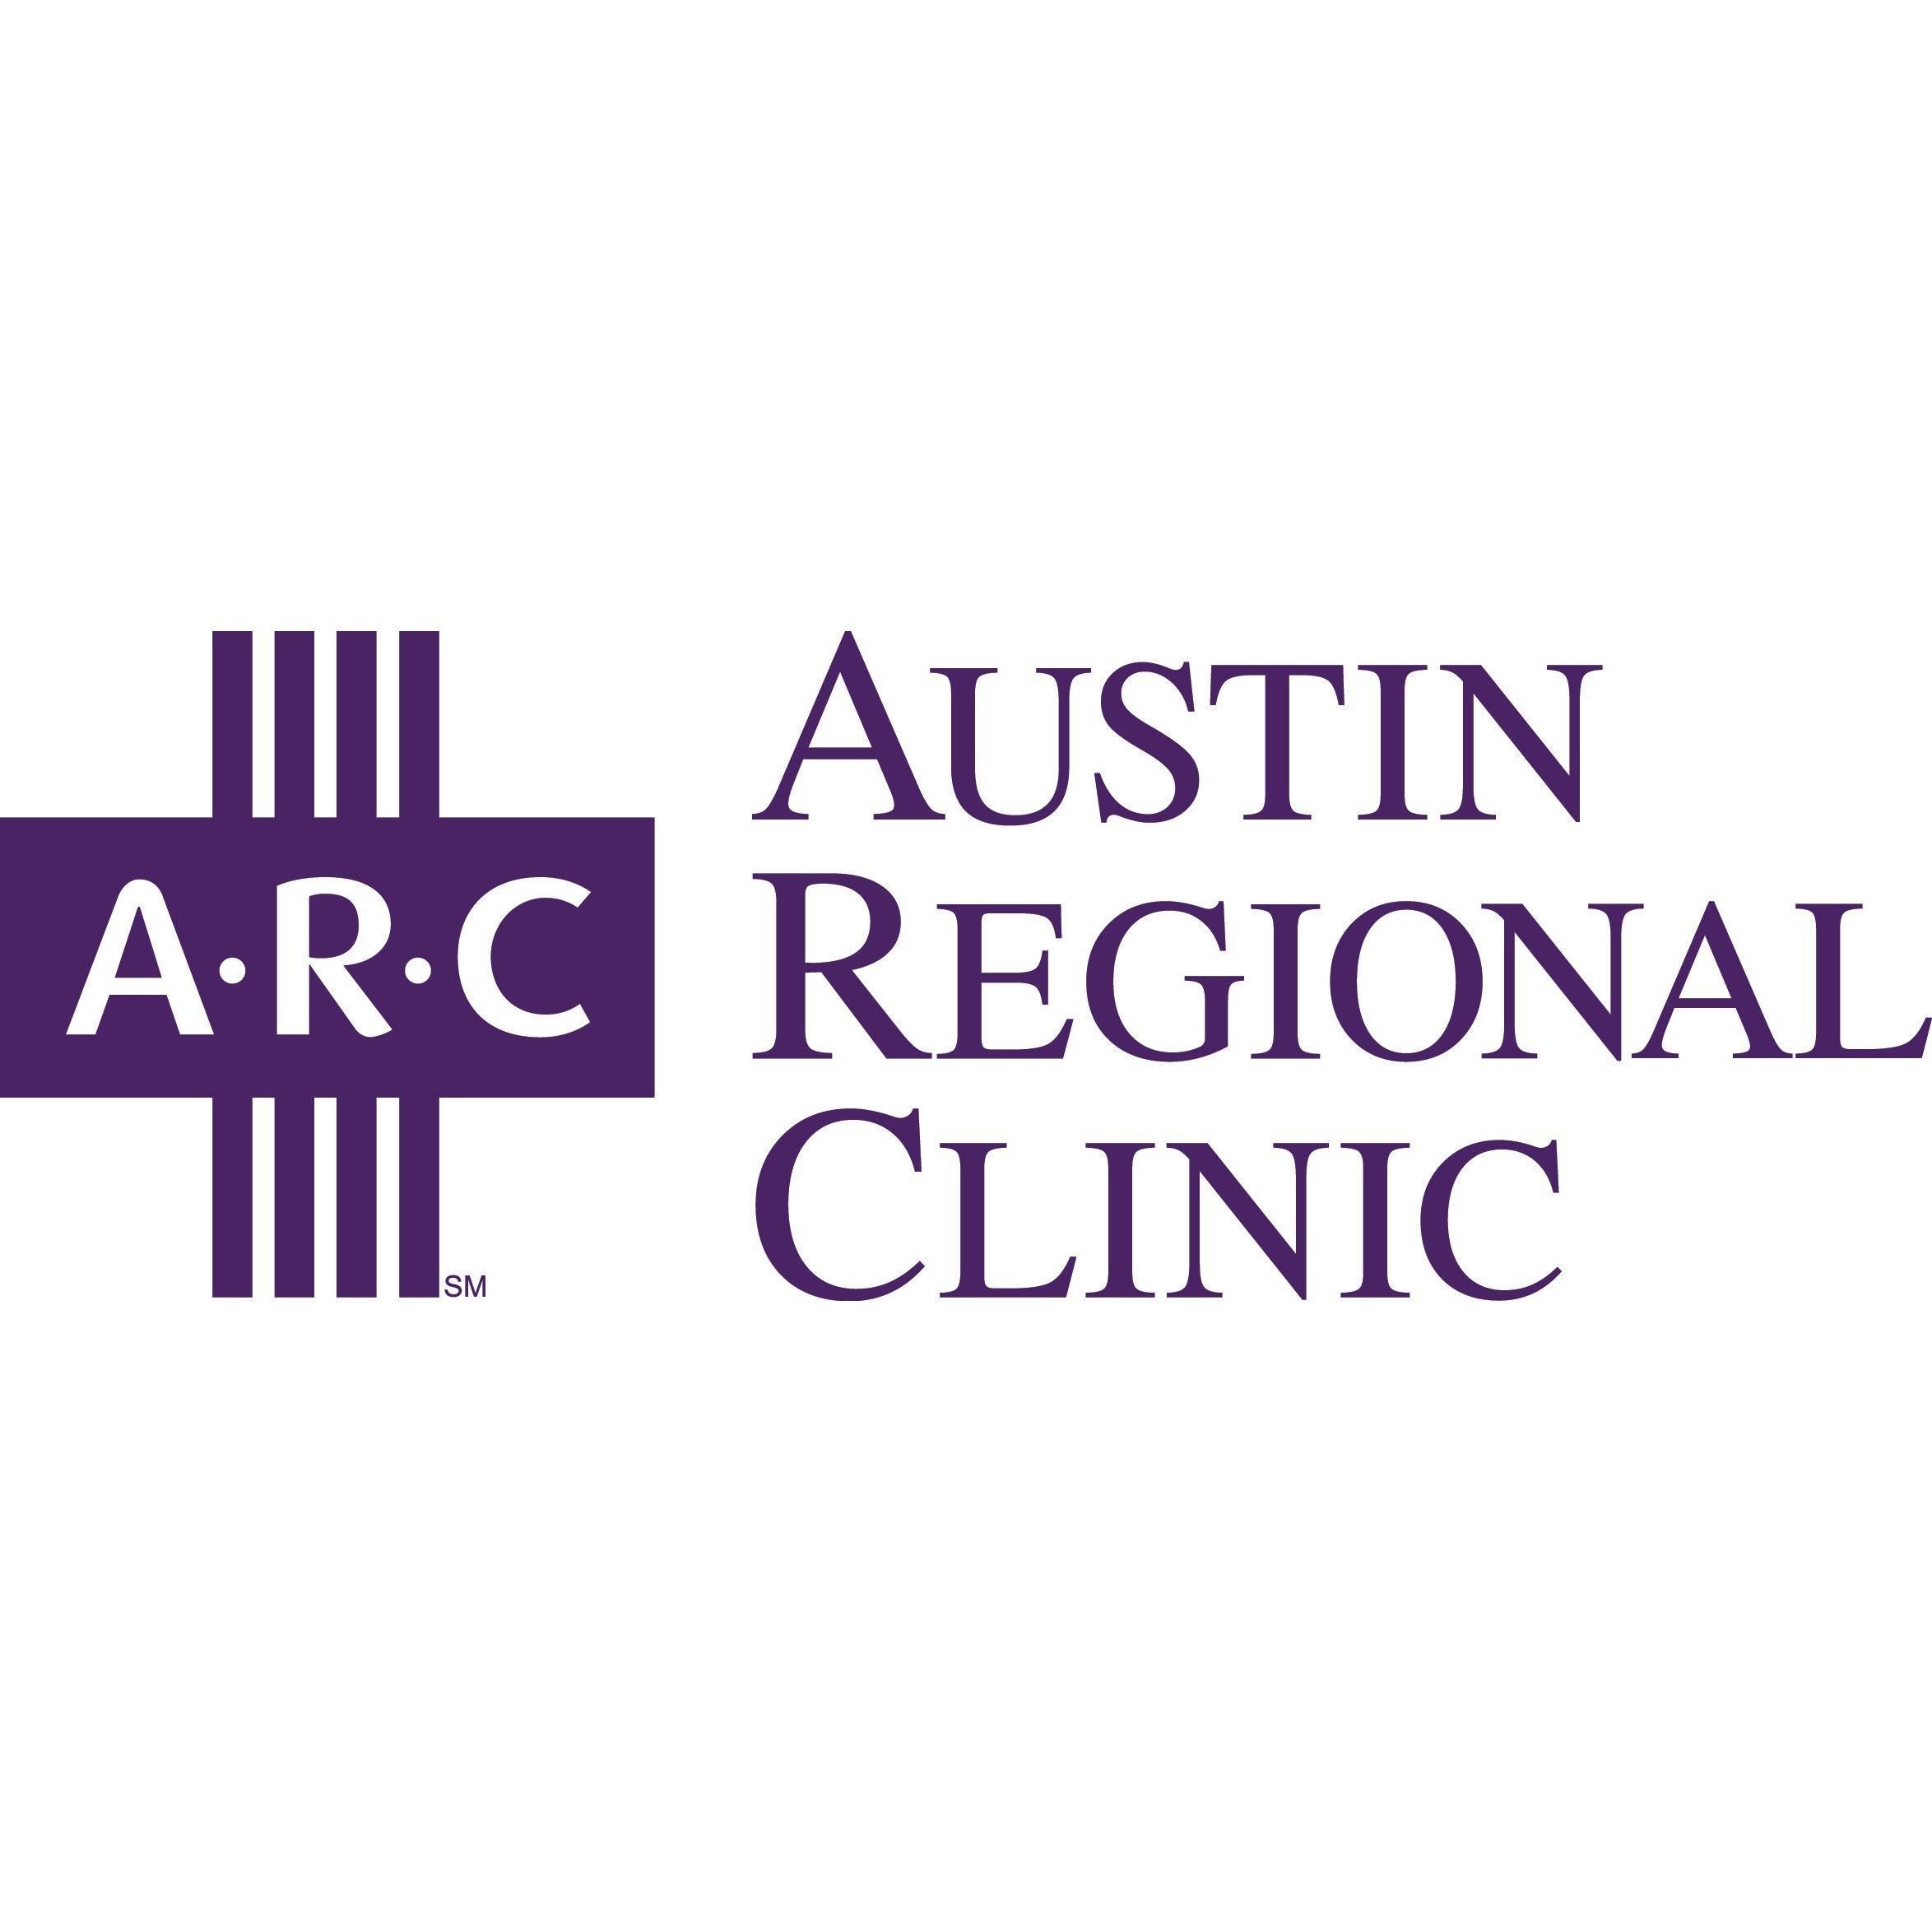 Austin Regional Clinic: ARC South 1st Specialty